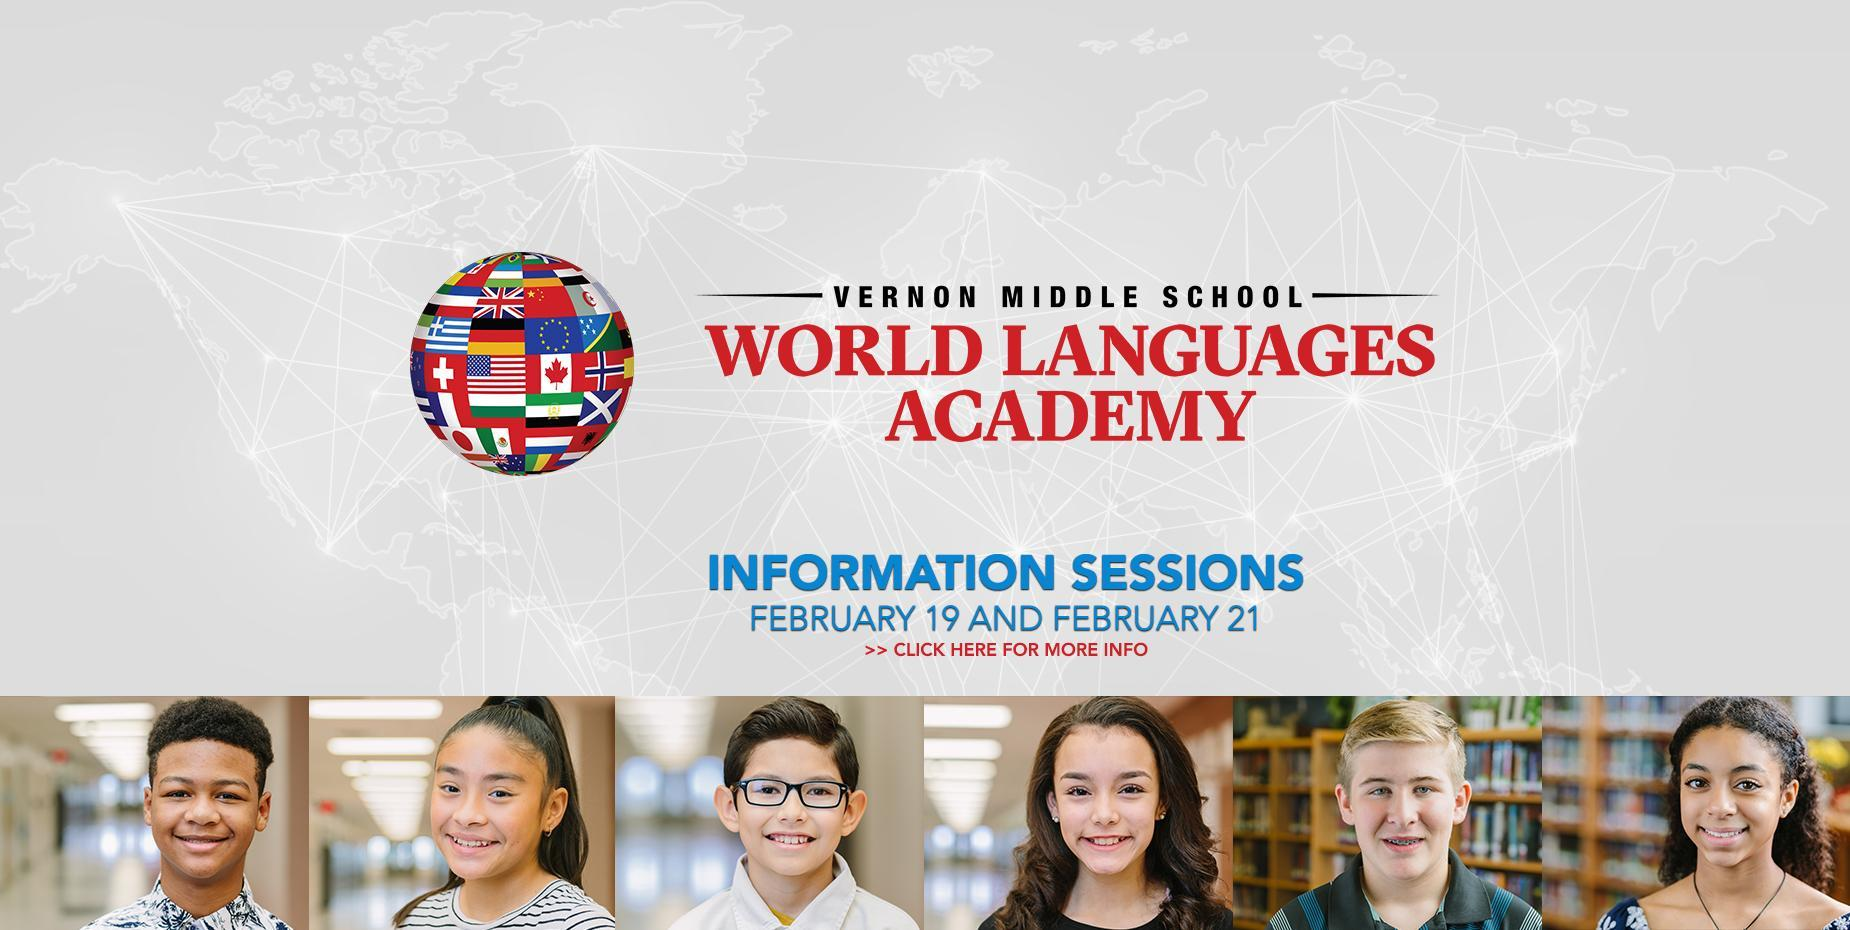 Vernon Middle School World Languages Academy Info Sessions